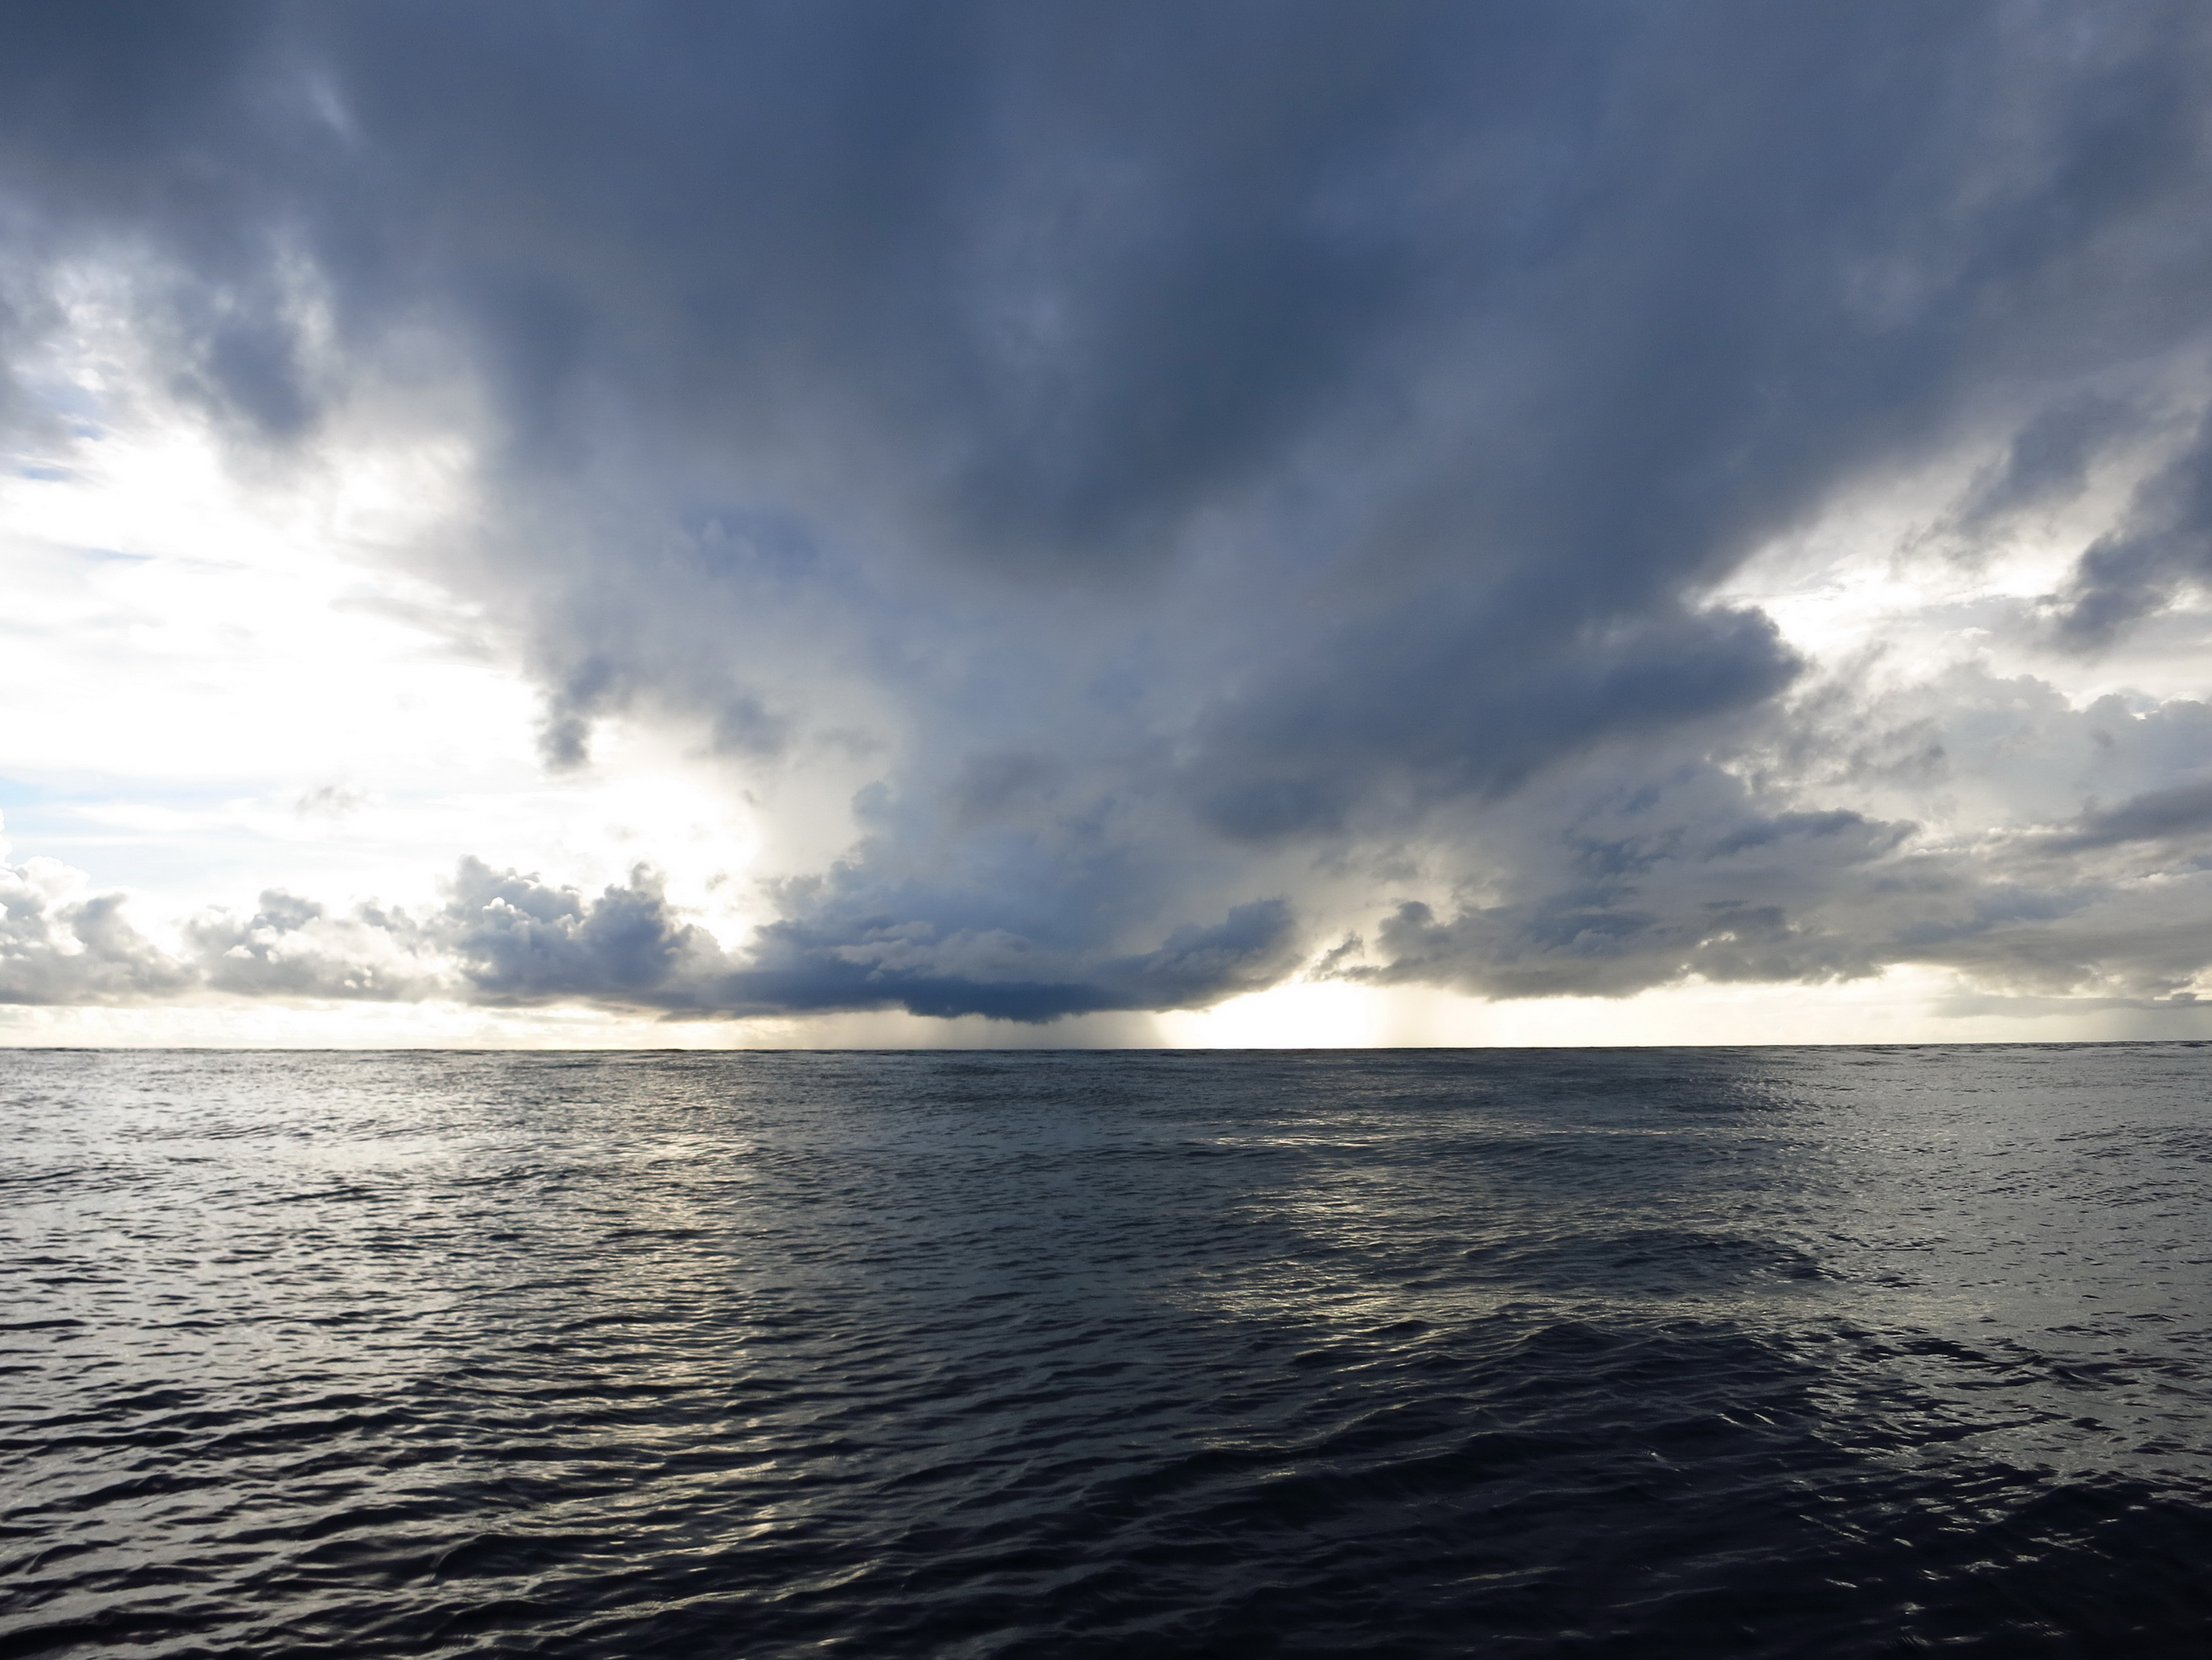 A sample of the beautiful seascape we enjoyed during those two days - Photo by Christian Perez